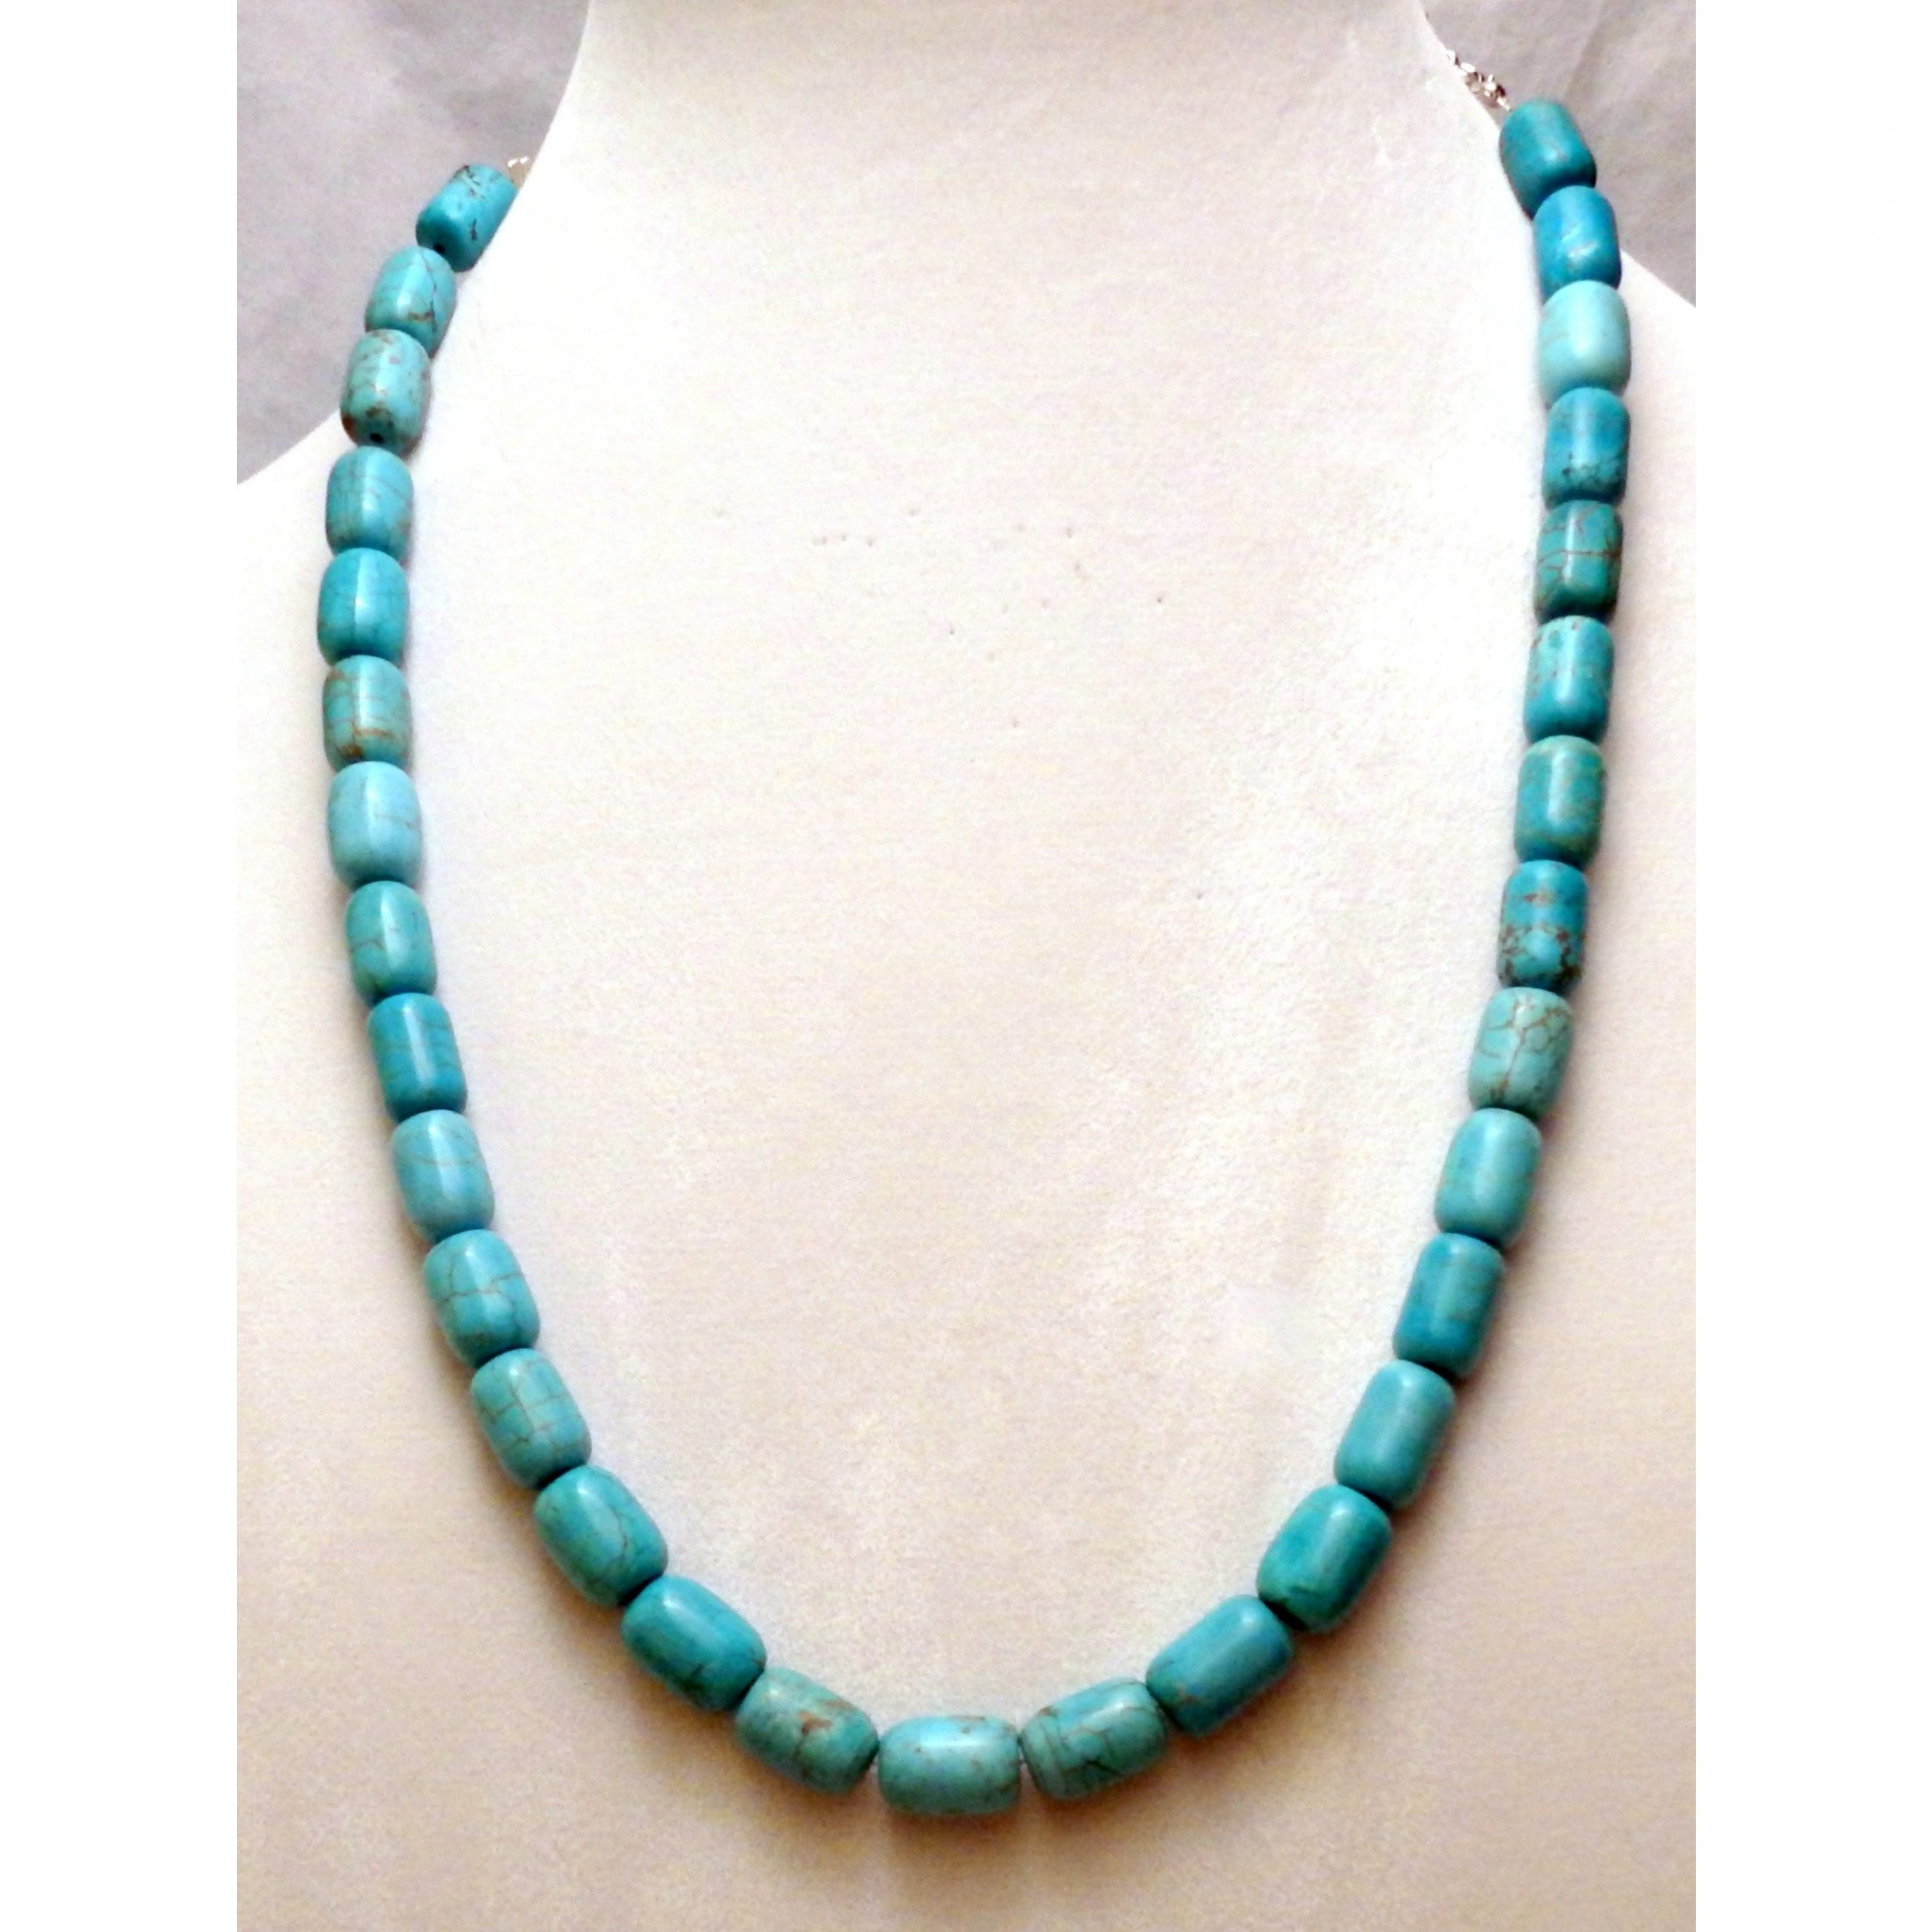 Chunky Faux Turquoise Necklace or Aqua Blue Howlite Necklace 1086